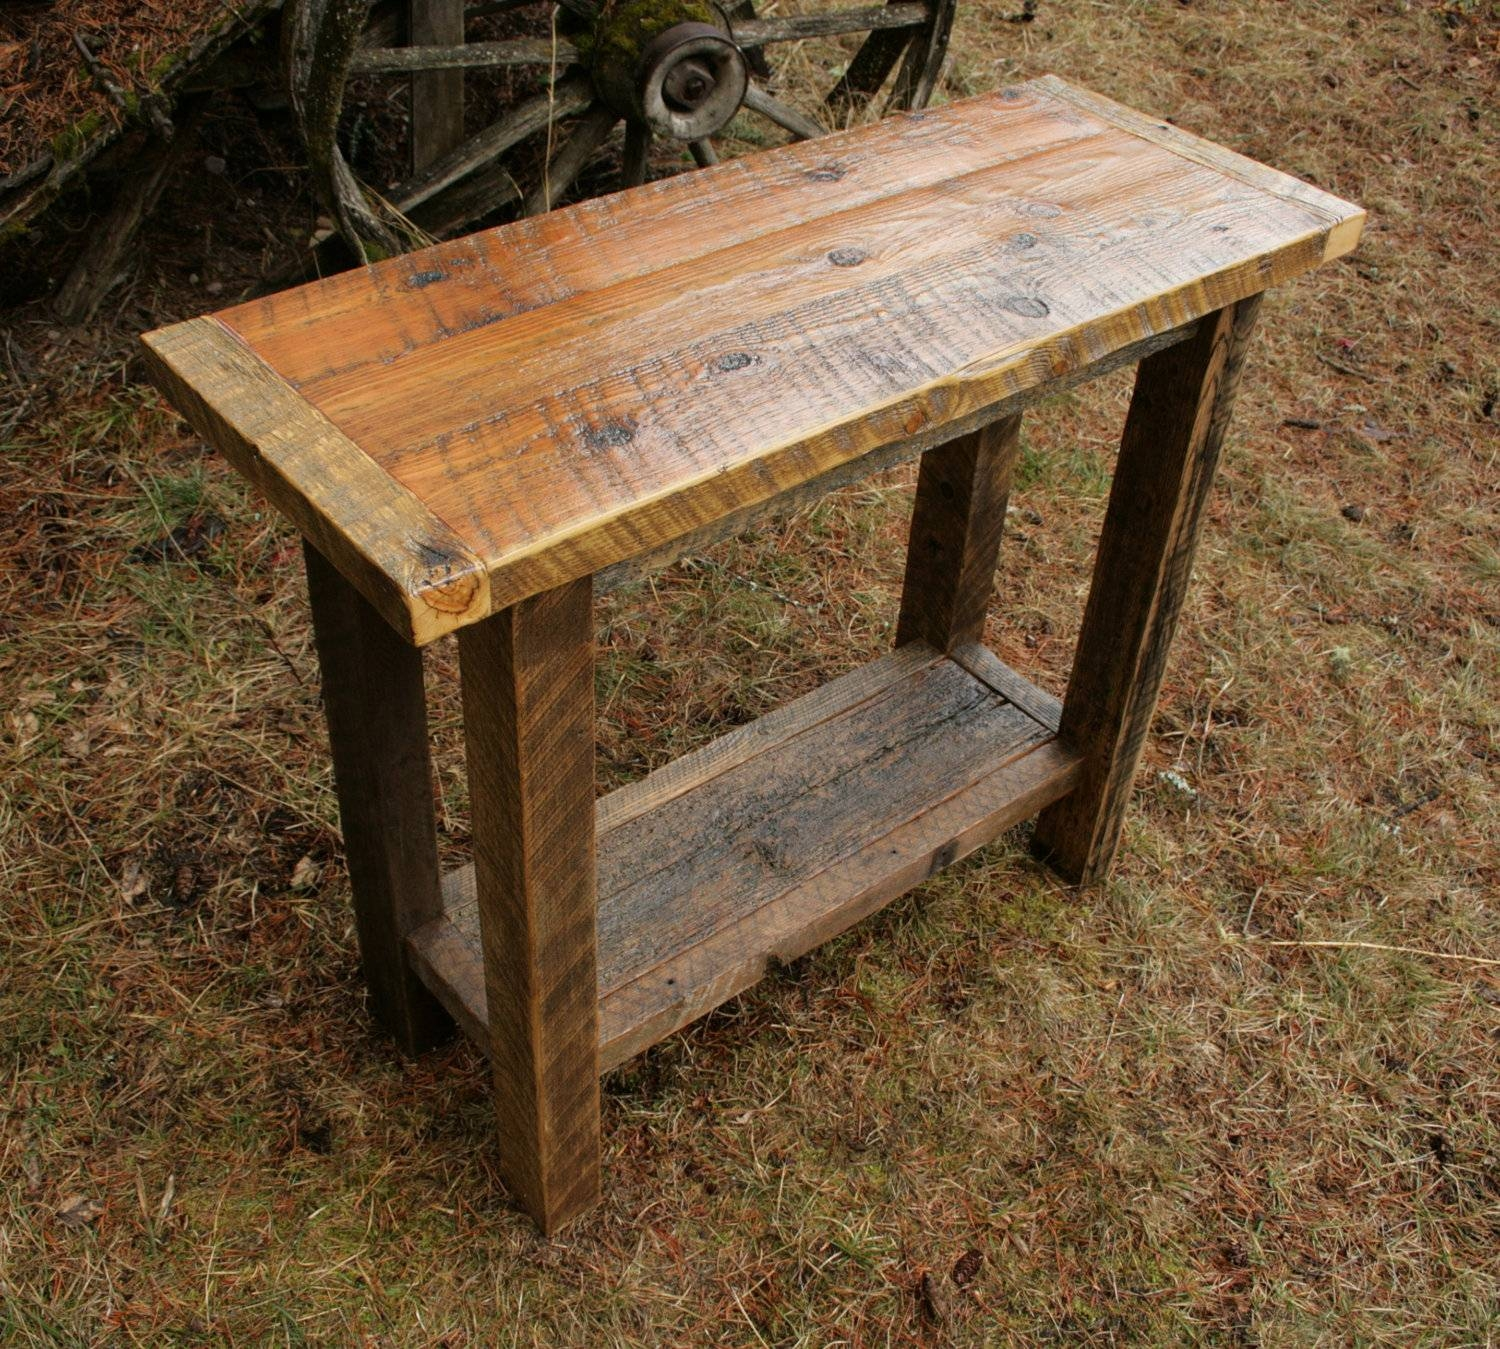 Rustic Sofa Table For Classic Room | Beauty Home Decor with regard to Barnwood Sofa Tables (Image 10 of 15)